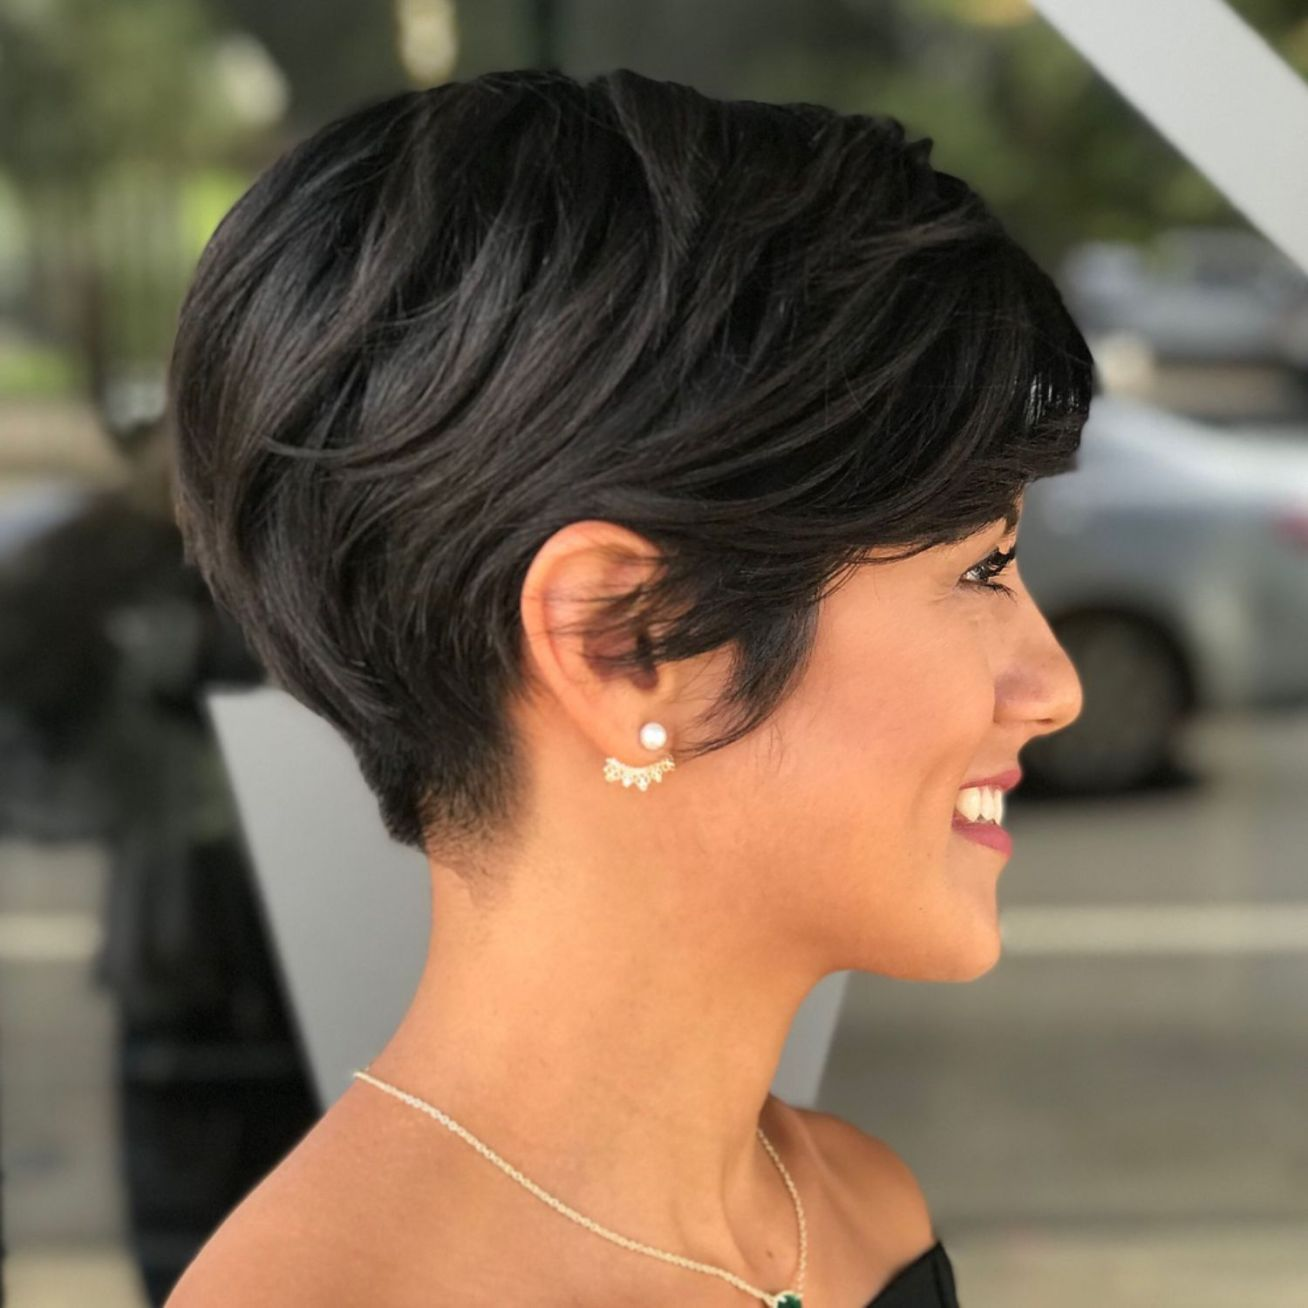 60 Classy Short Haircuts And Hairstyles For Thick Hair In 2020 Short Hairstyles For Thick Hair Thick Hair Pixie Thick Hair Styles